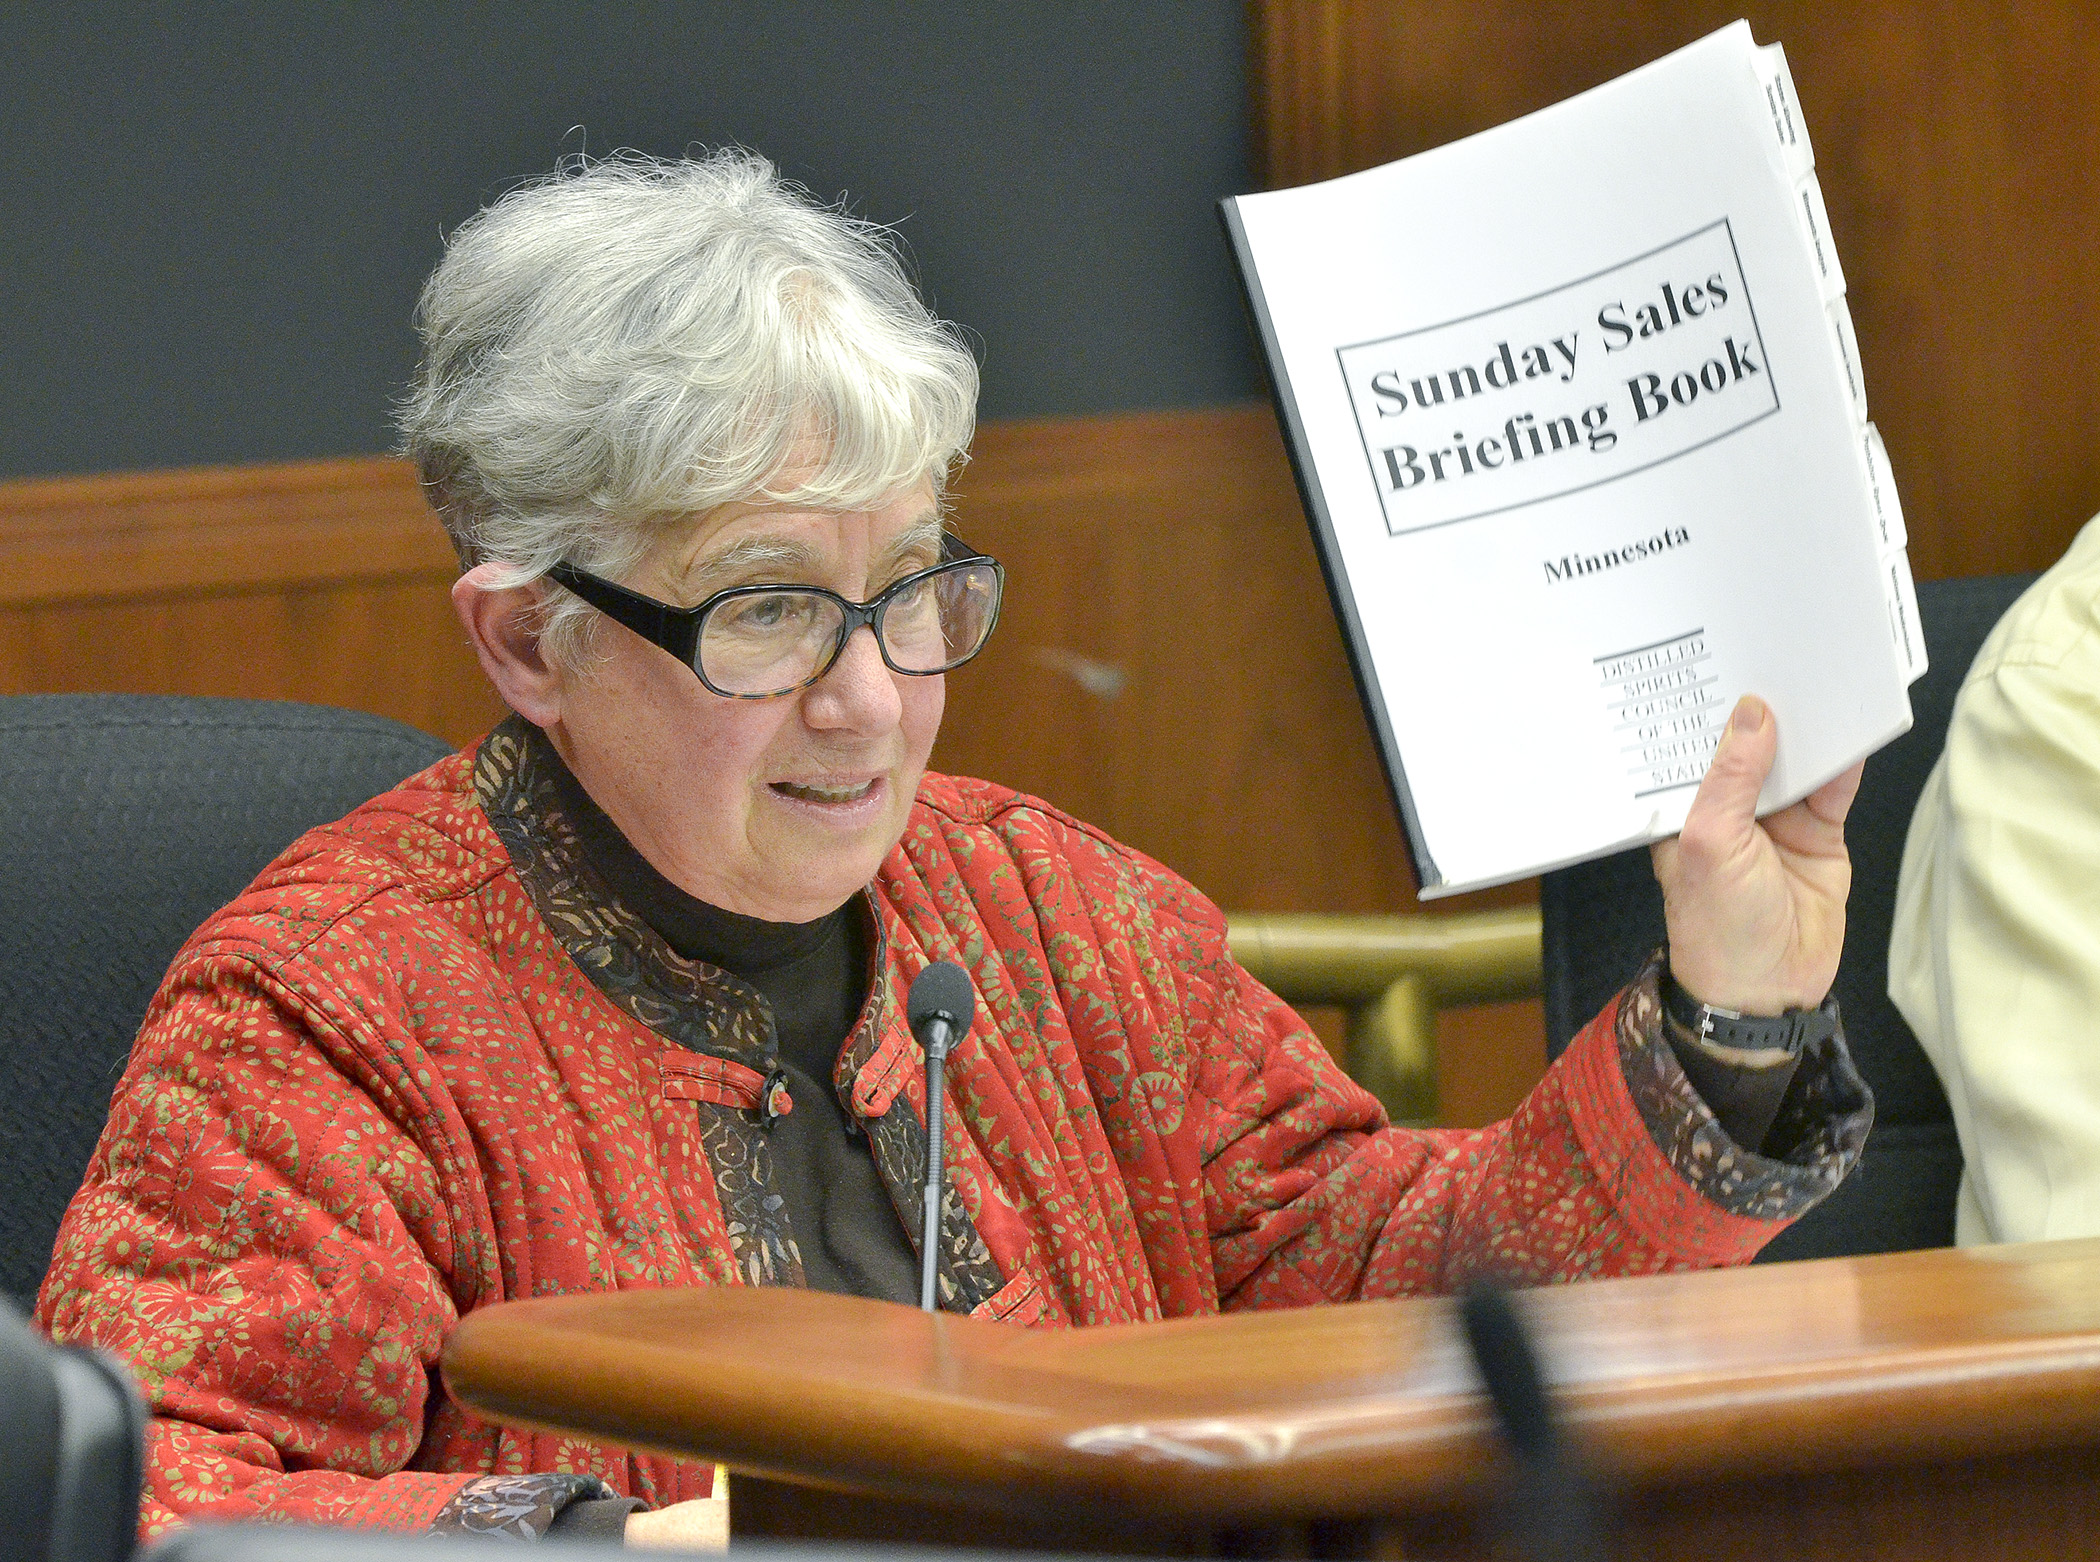 Rep. Phyllis Kahn shows a Sunday Sales Briefing Book to members of the House Commerce and Consumer Protection Finance and Policy Committee Wednesday during an informational hearing on a bill that would repeal Minnesota's Sunday off-sale liquor sales prohibition. (Photos by Andrew VonBank.)